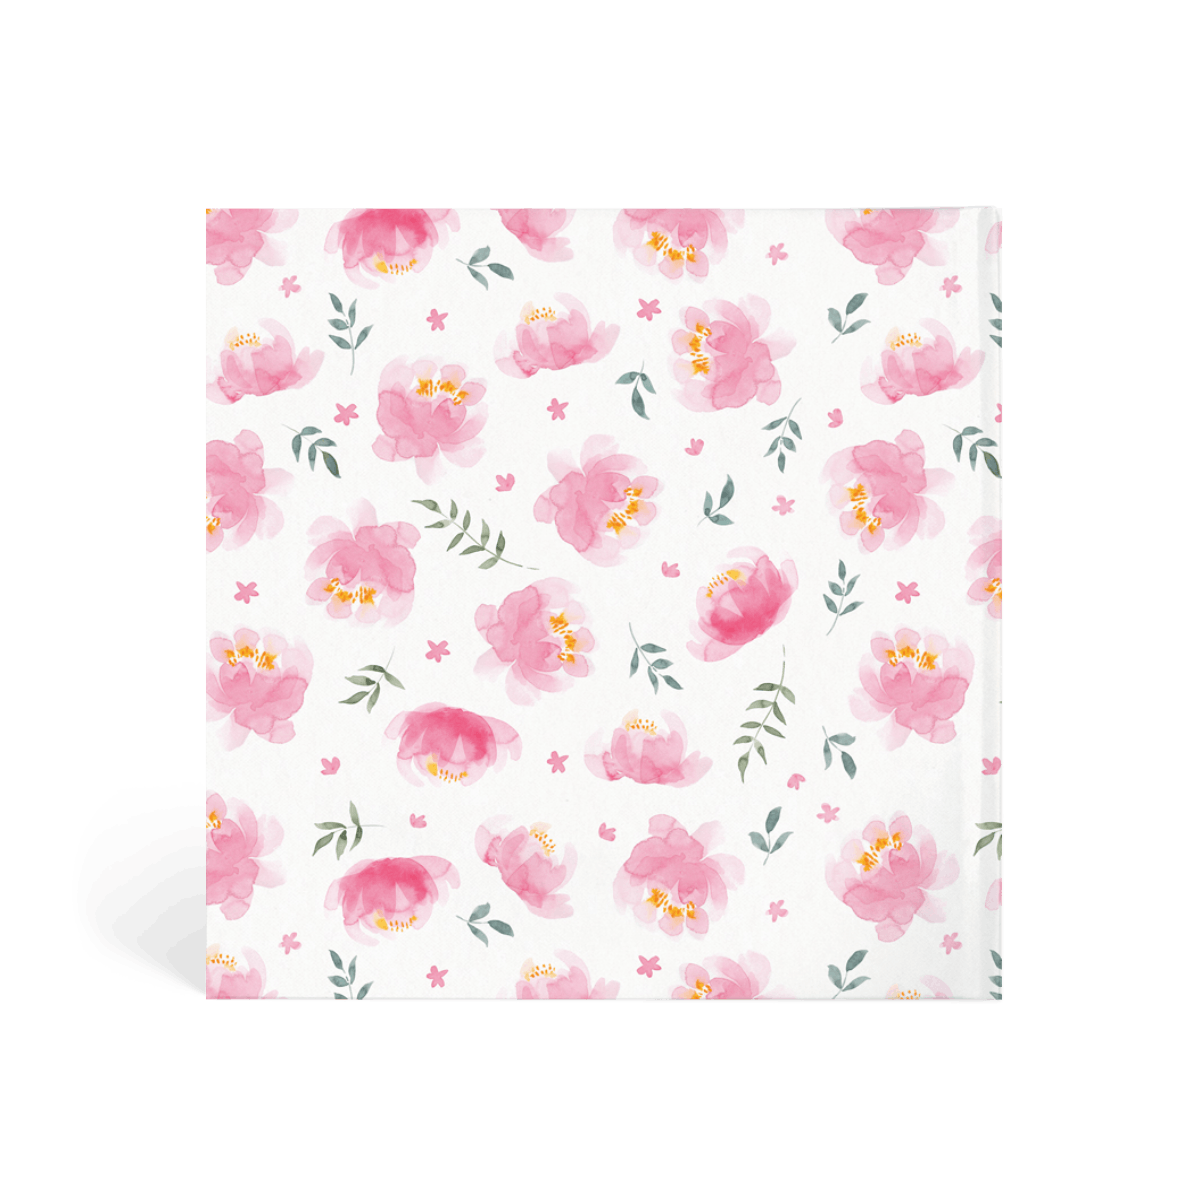 Https%3a%2f%2fwww.papier.com%2fproduct image%2f44621%2f33%2fpeonies 11192 back 1535727954.png?ixlib=rb 1.1